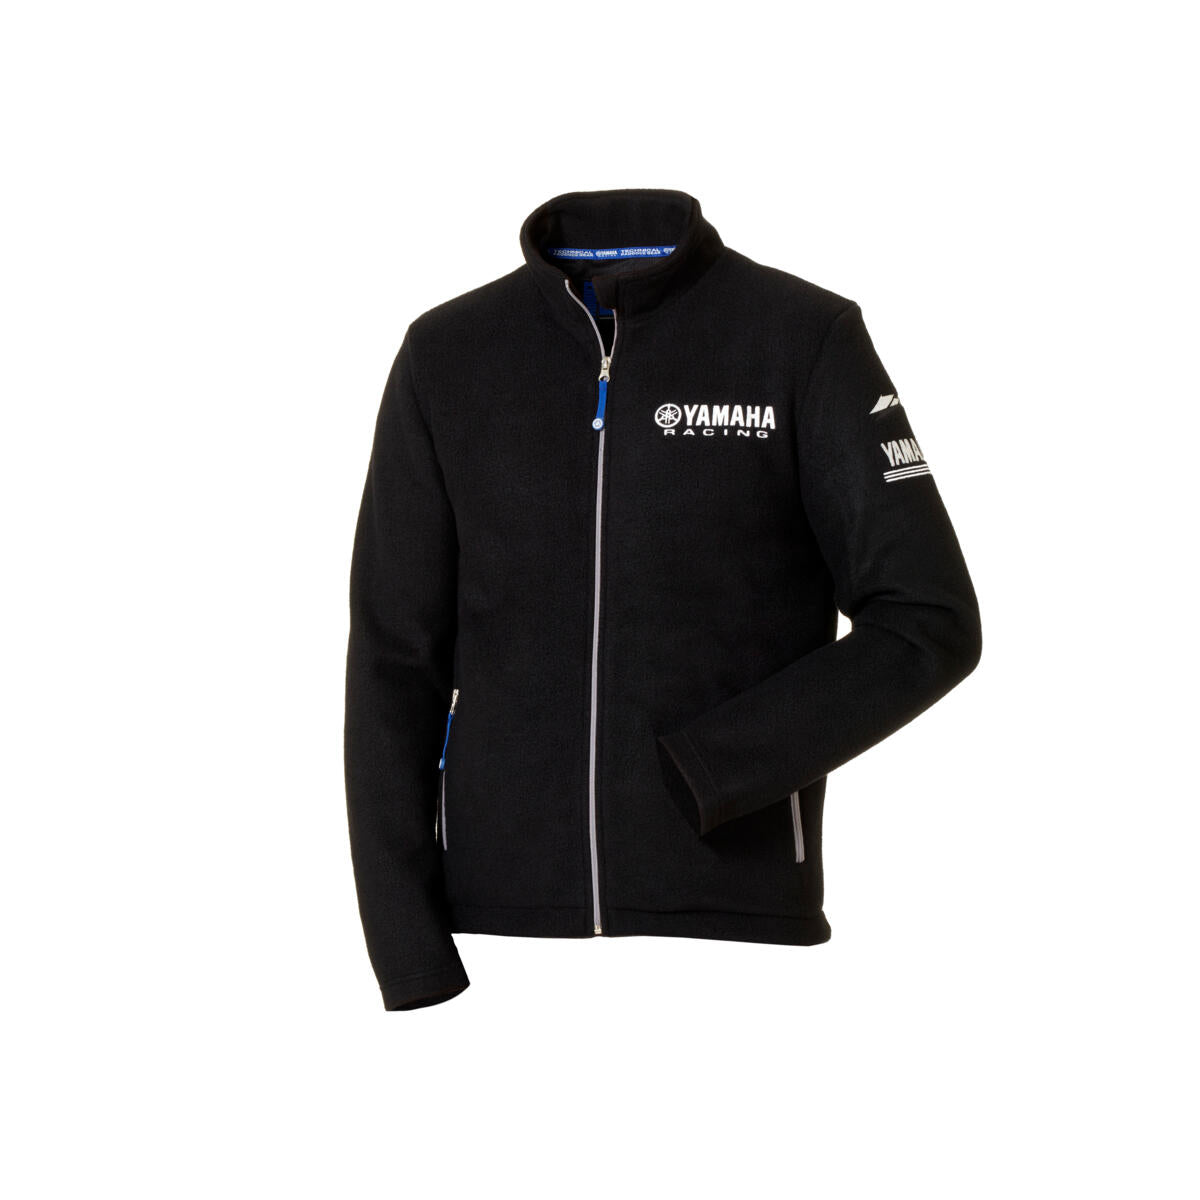 Paddock Blue Men's Fleece Jacket - Black / Blue